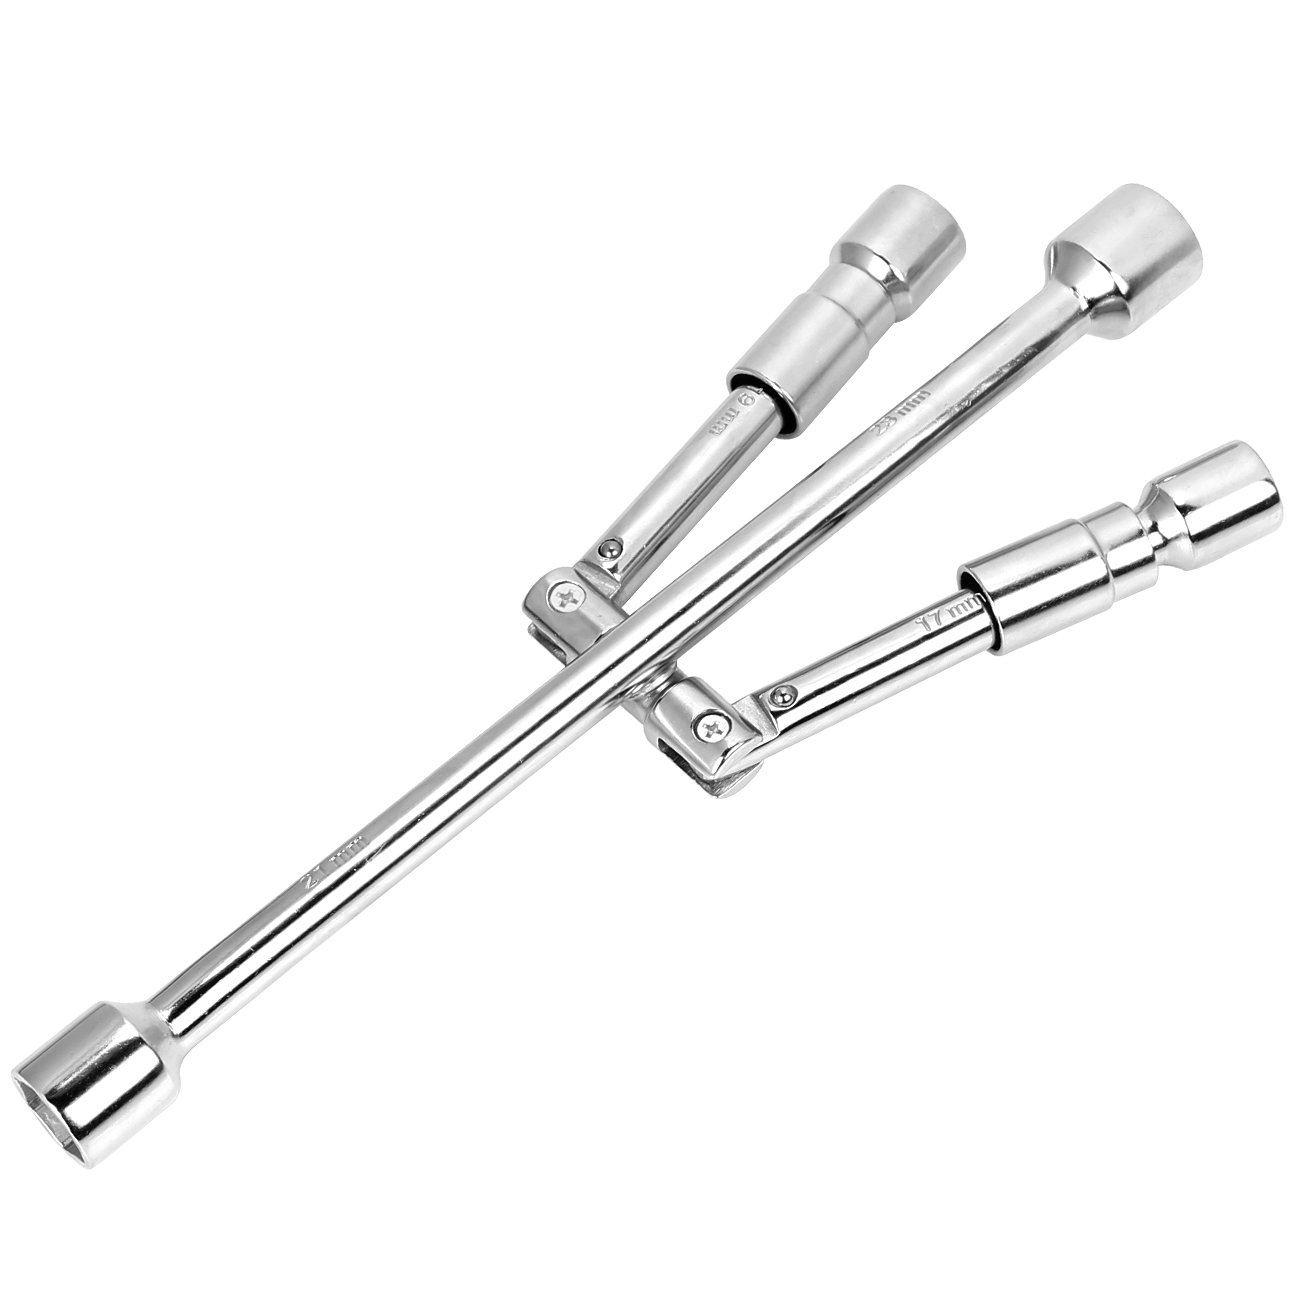 TONDA 14'' Folding Lug Wrench 4-Way Cross Wrench 17, 19, 21, 23mm